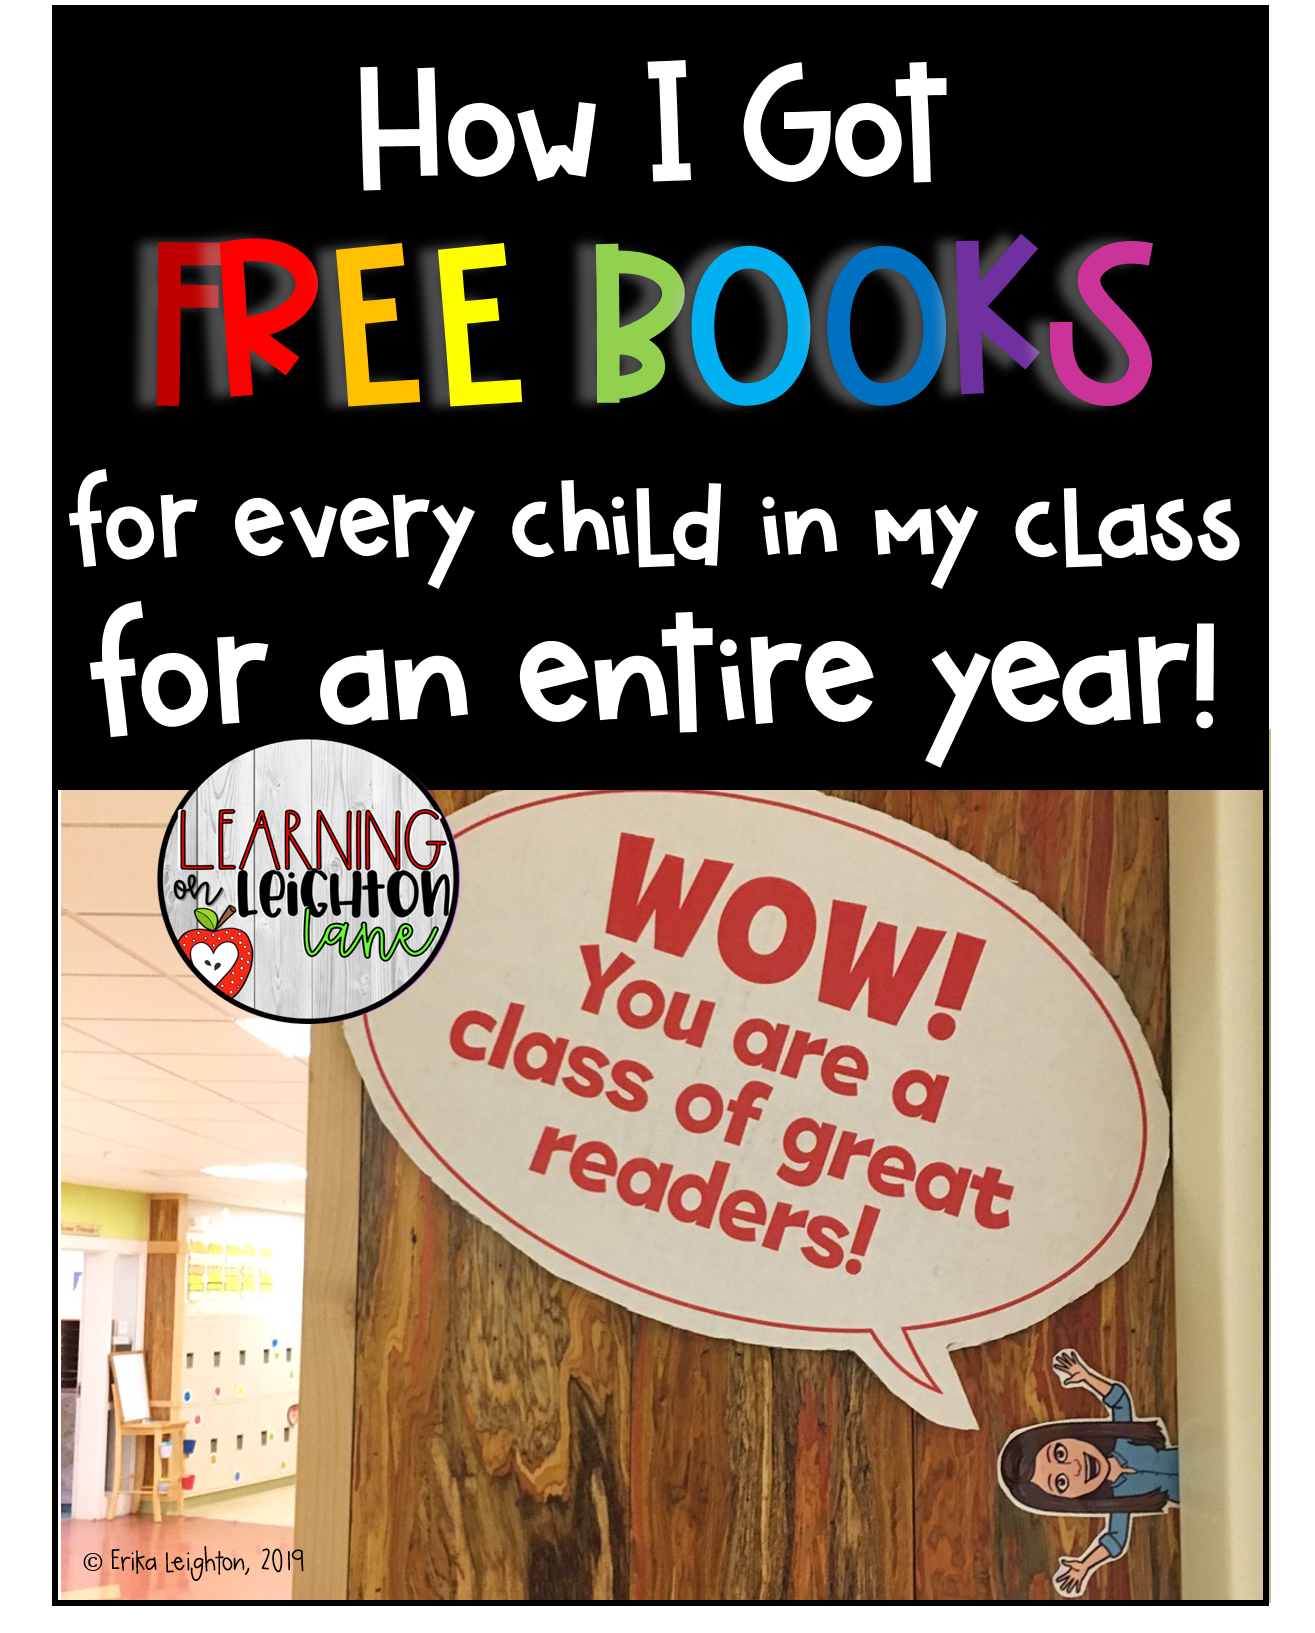 Learn how to get free books for every child in your class for an entire year!